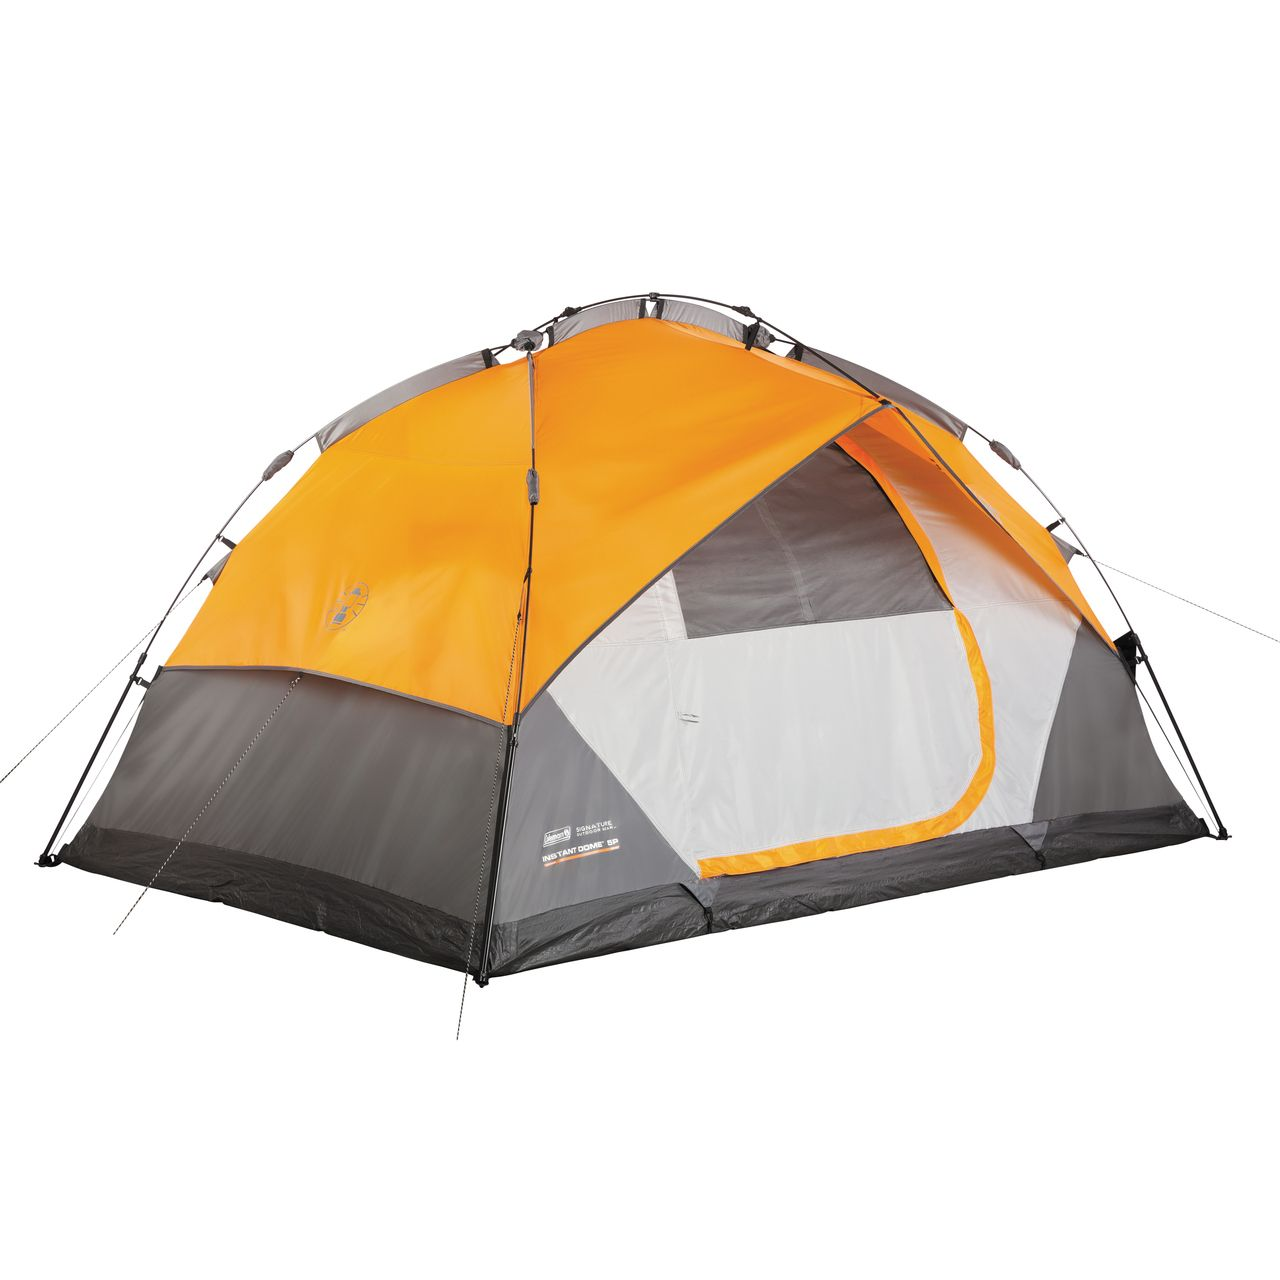 Sparky Camping Gear - Coleman Instant Dome 5 Person Polyester Tent w/ Steel Poles, $149.95 (http://sparkycampinggear.com/coleman-instant-dome-5-person-polyester-tent-w-steel-poles/)